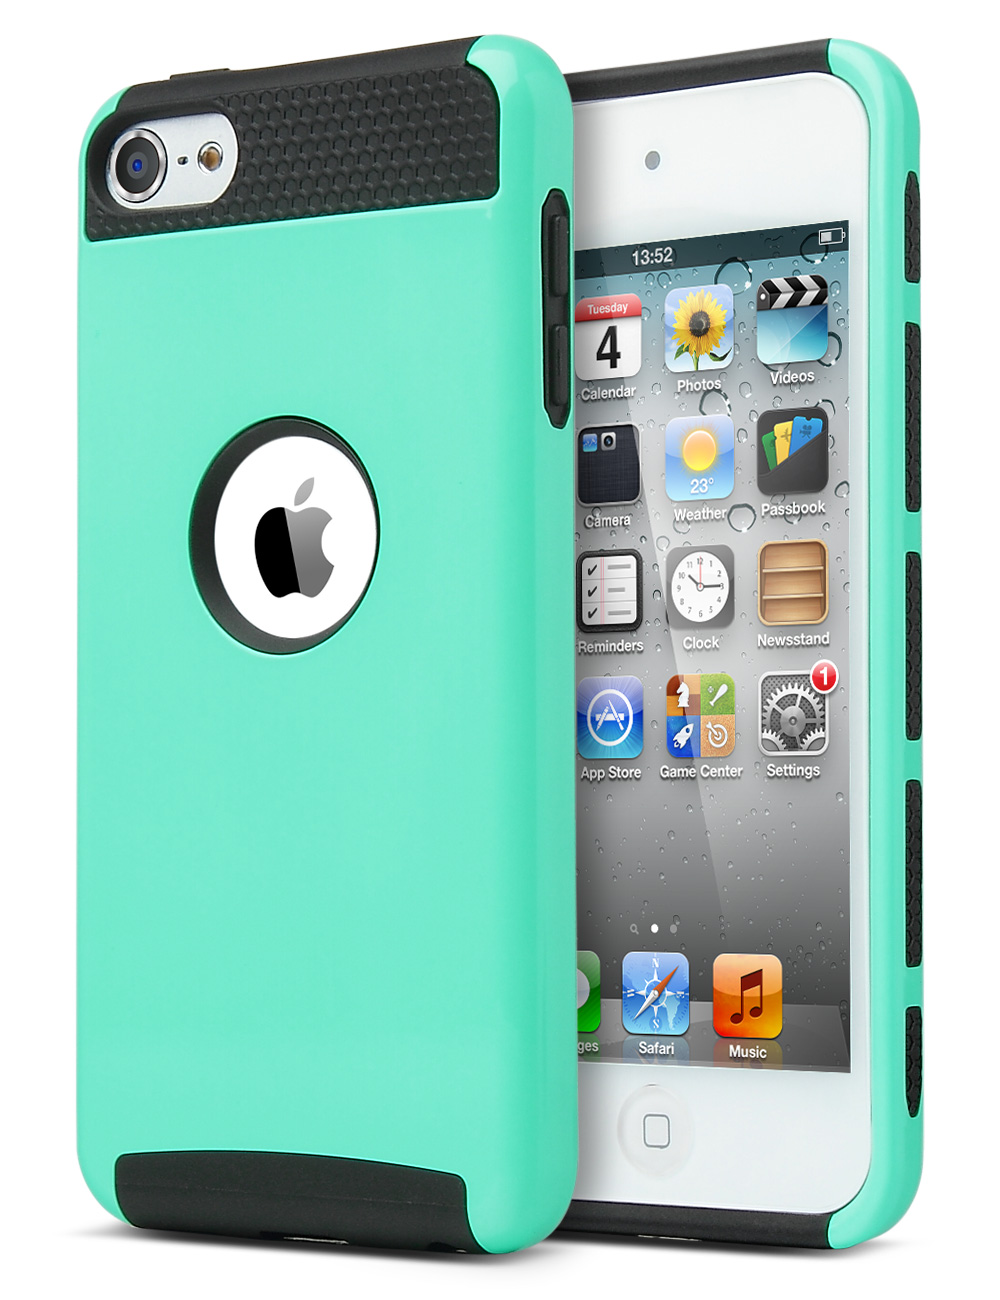 ipod touch 6 case,ipod 5 case,ulak slim fit 2 piece style hybridipod touch 6 case,ipod 5 case,ulak slim fit 2 piece style hybrid phone hard case protective cover for apple ipod touch 6th 6g 6 5th 5g 5 walmart com